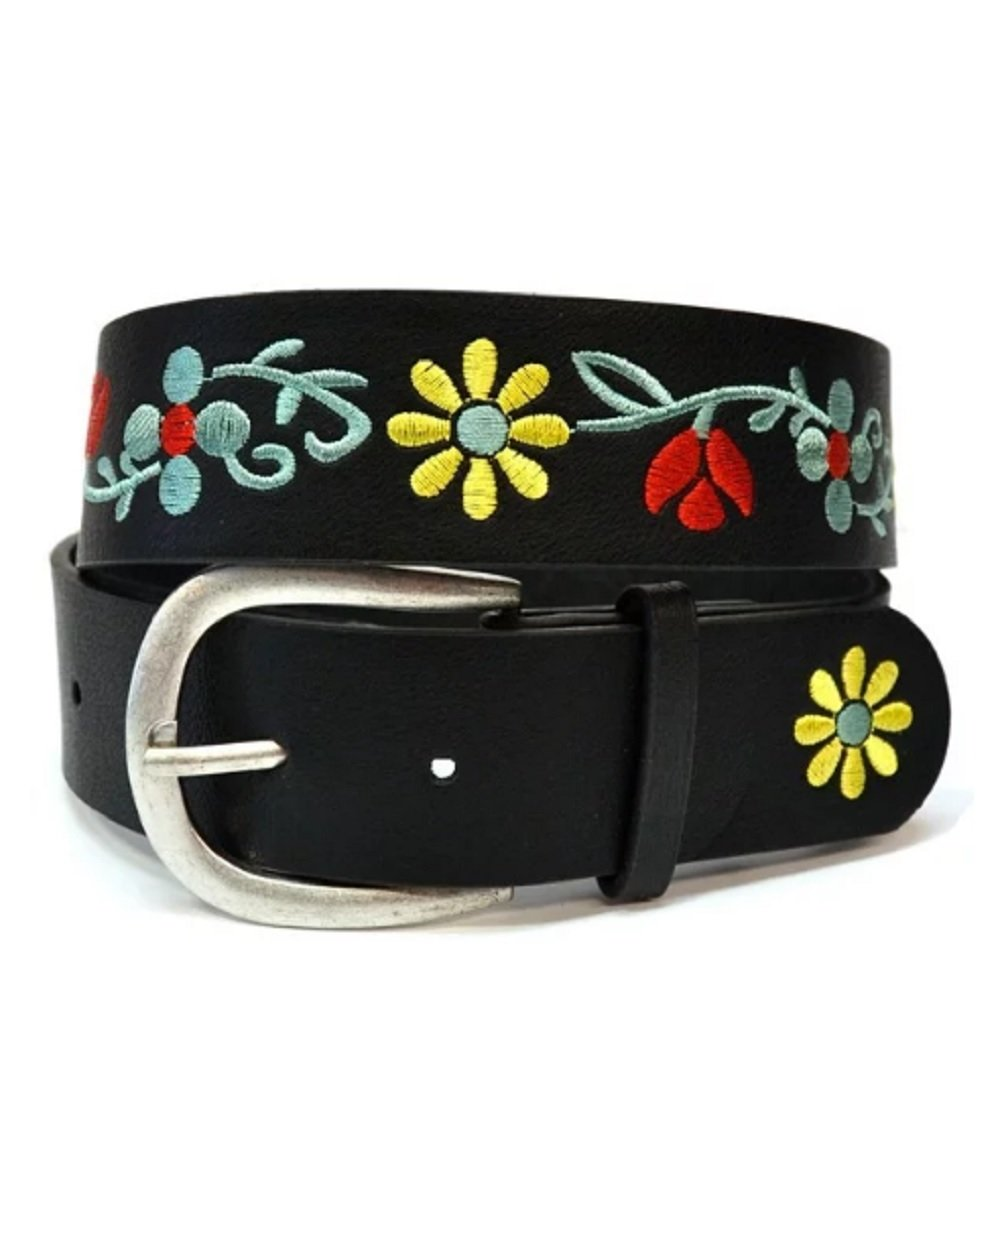 Love My Seamless Womens Ladies Girls Accessories Multicolor Floral Embroidery Jean Belt (Black)